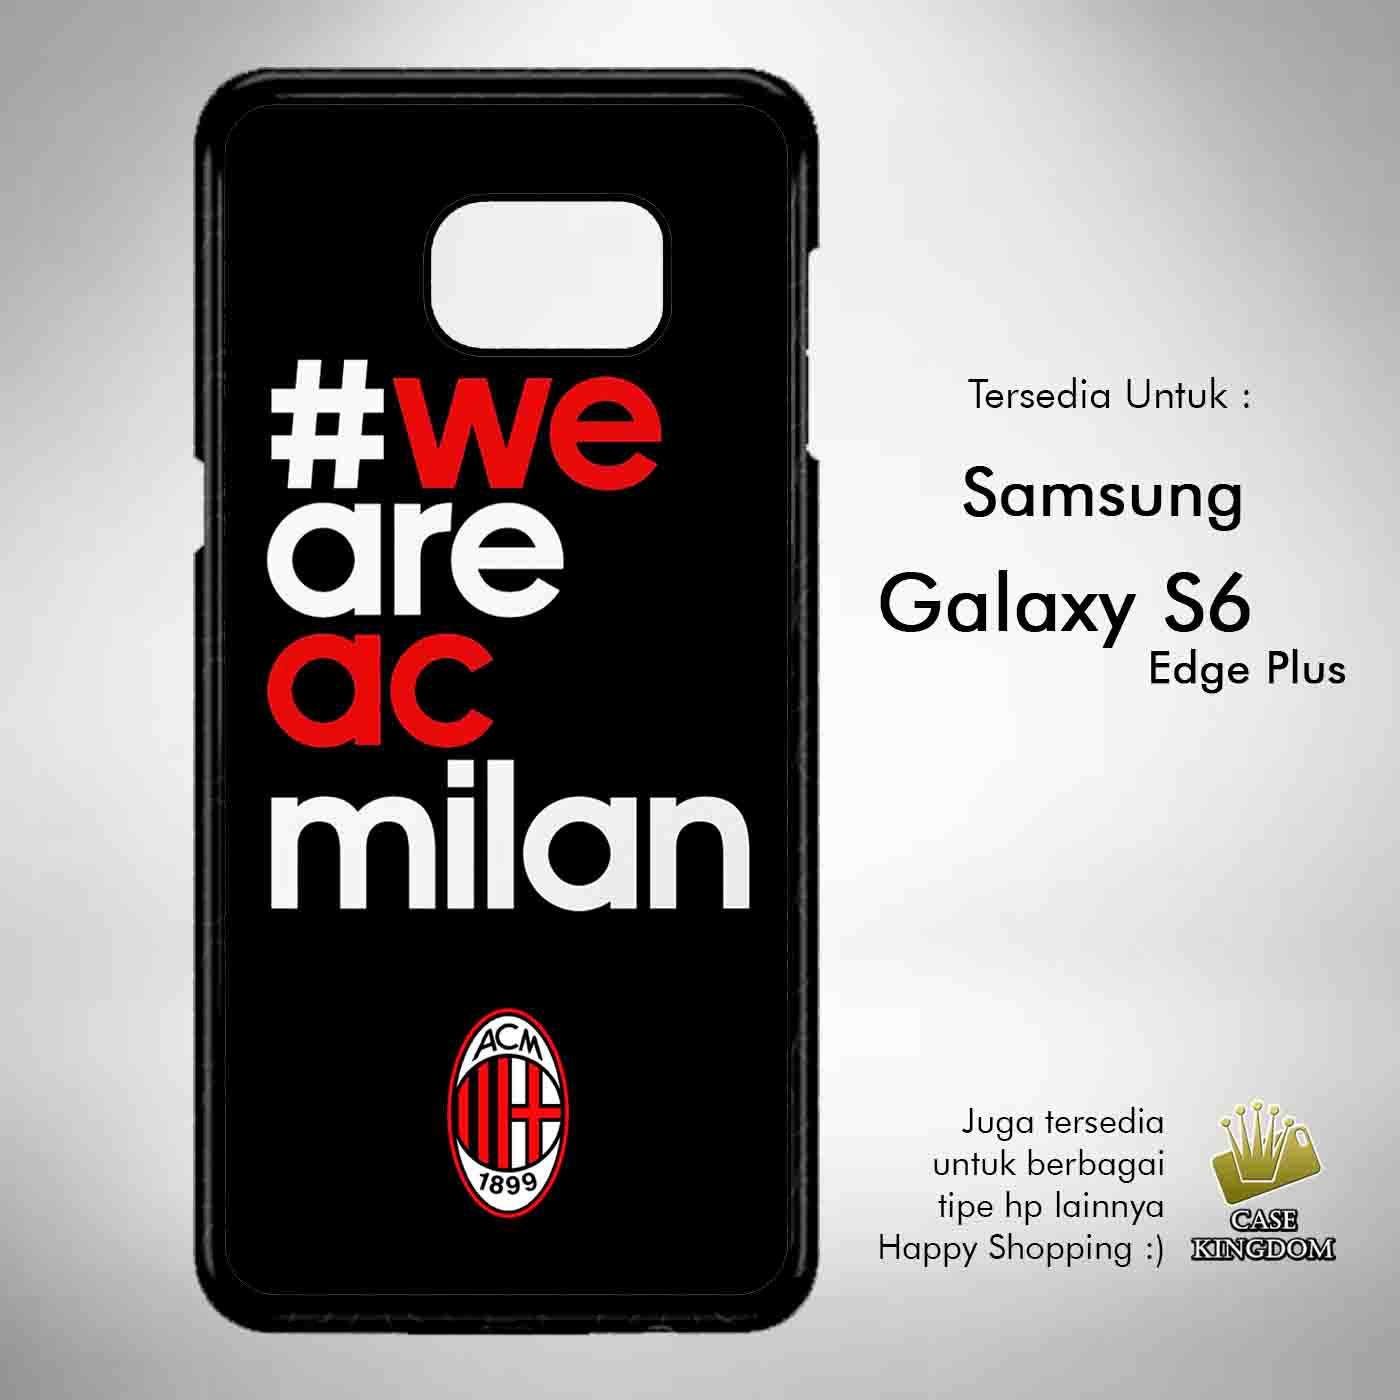 Ac Milan 5 Casing Custom Hardcase Samsung Galaxy S6 edge Plus Case Cover